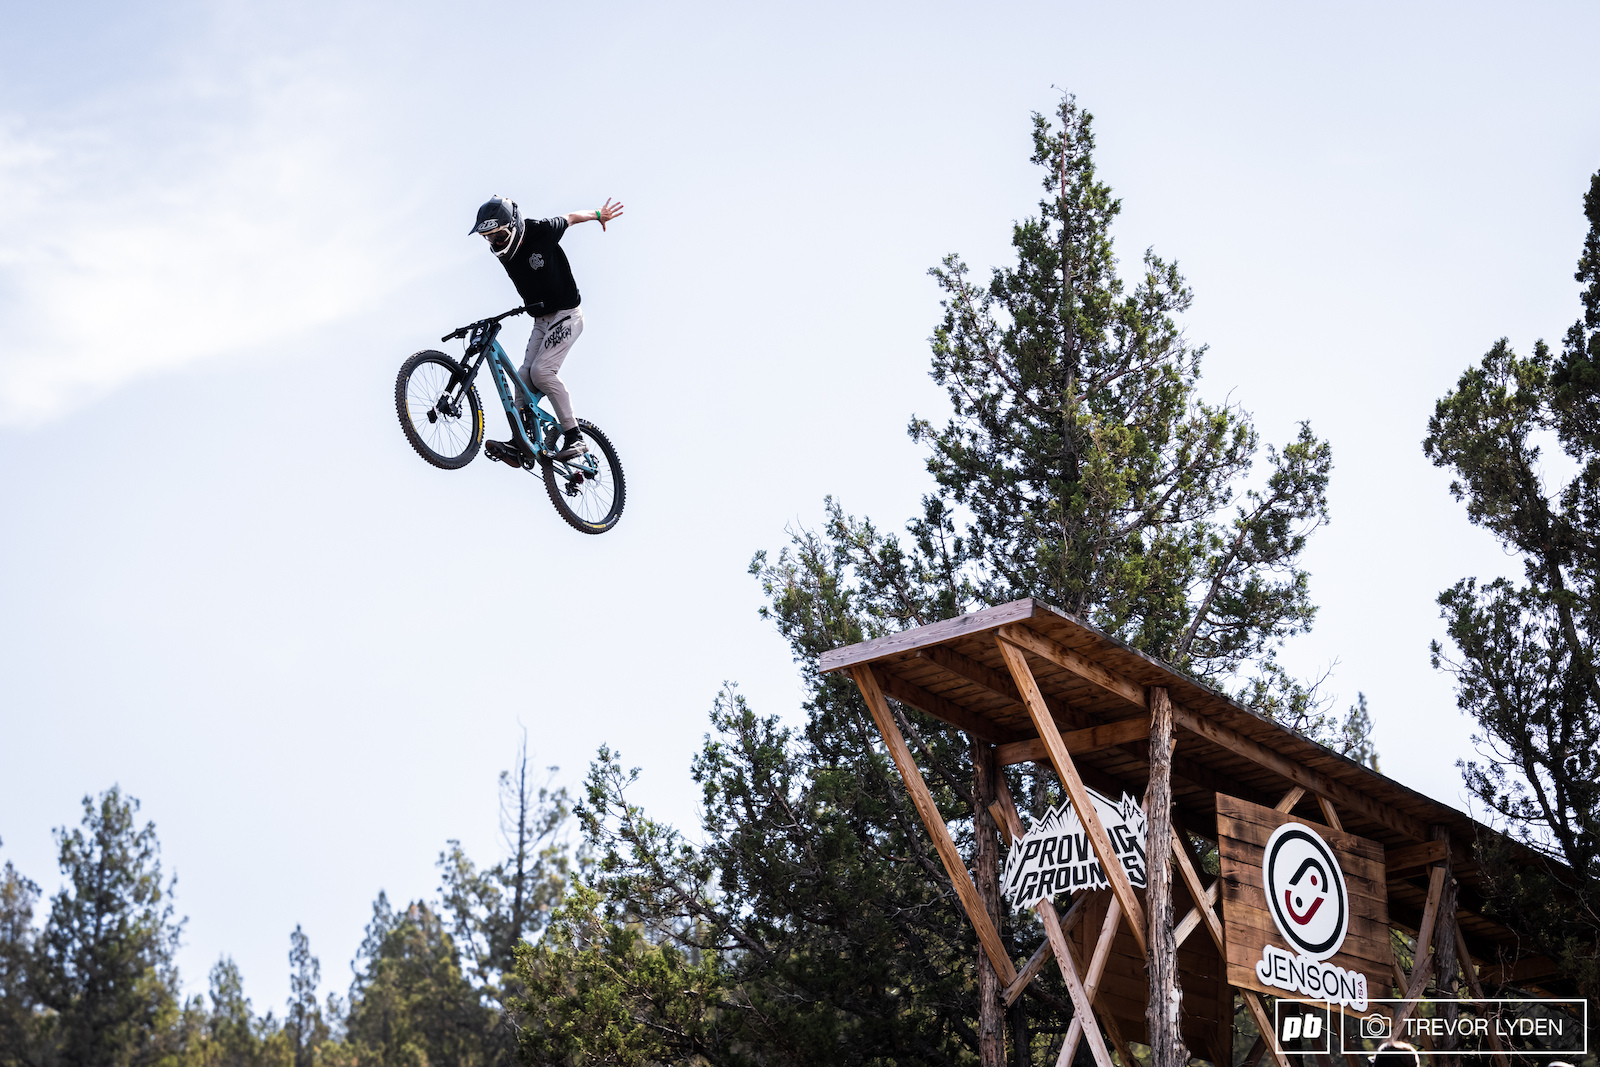 Ryan. Doing a suicide. On a bike. Off a drop.